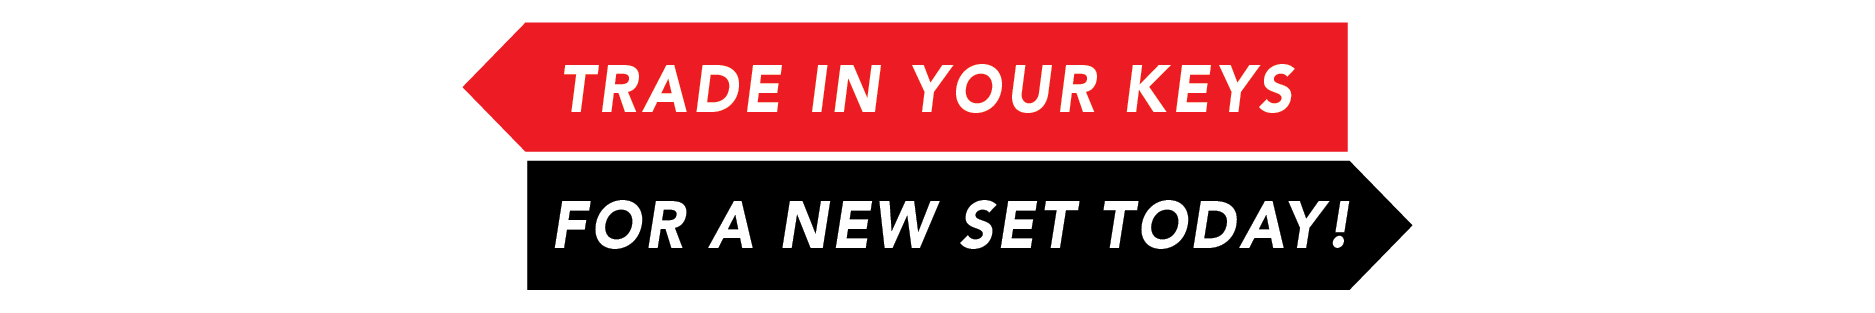 Trade In Your Keys For A New Set Today